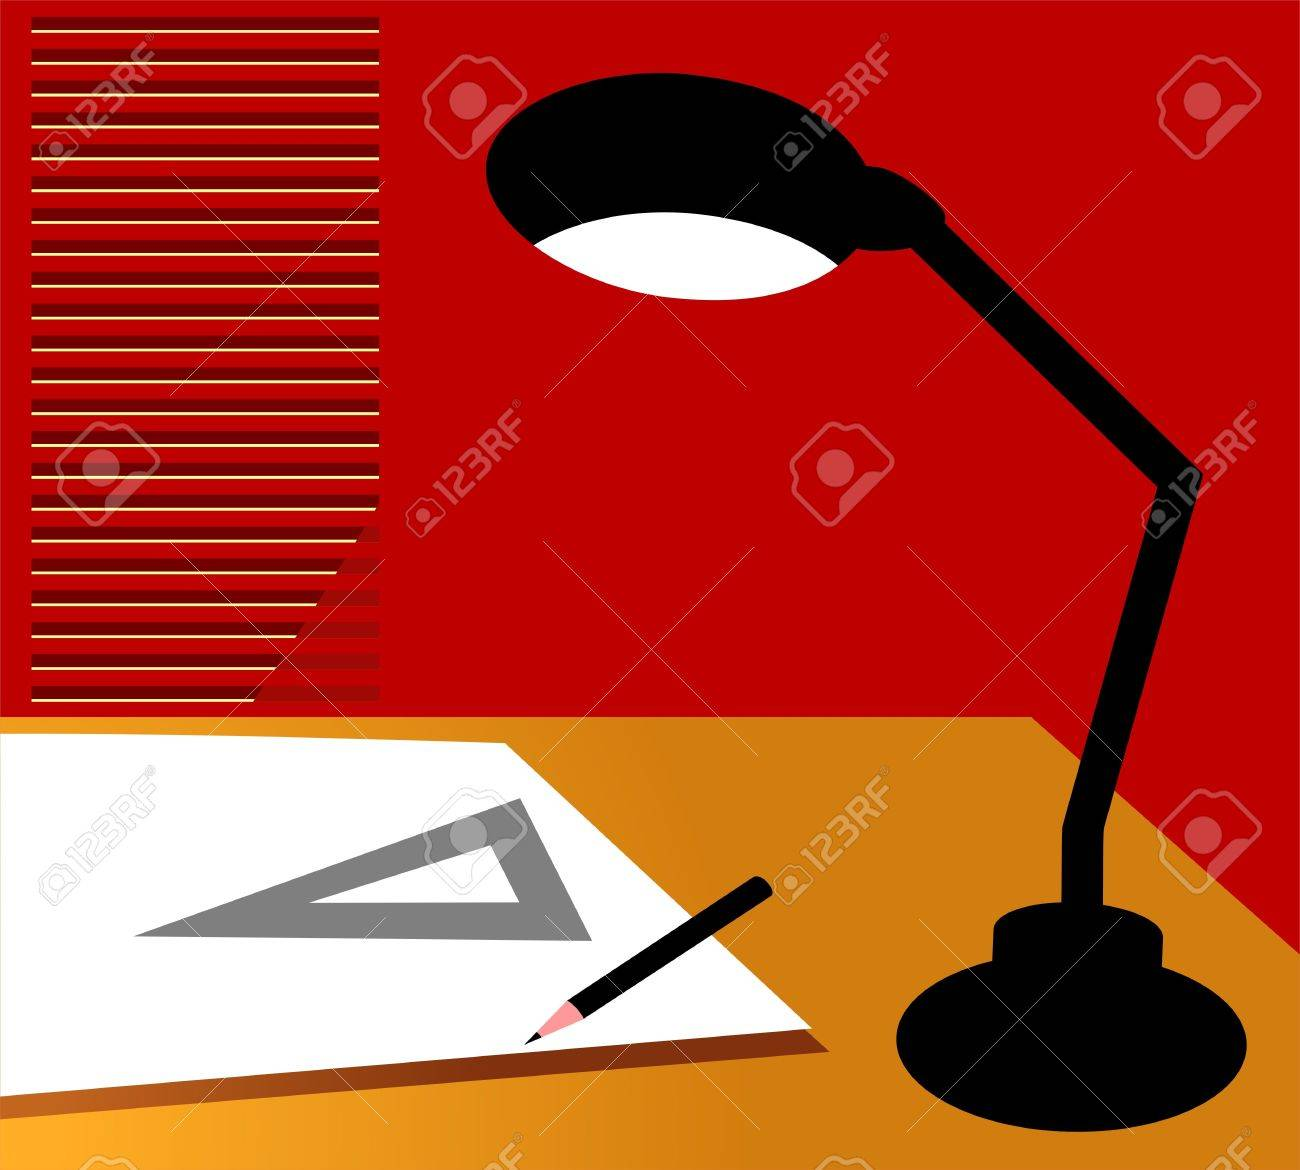 Table lamp for drawing - Illustration Illustration Of Black Table Lamp And Drawing Tools